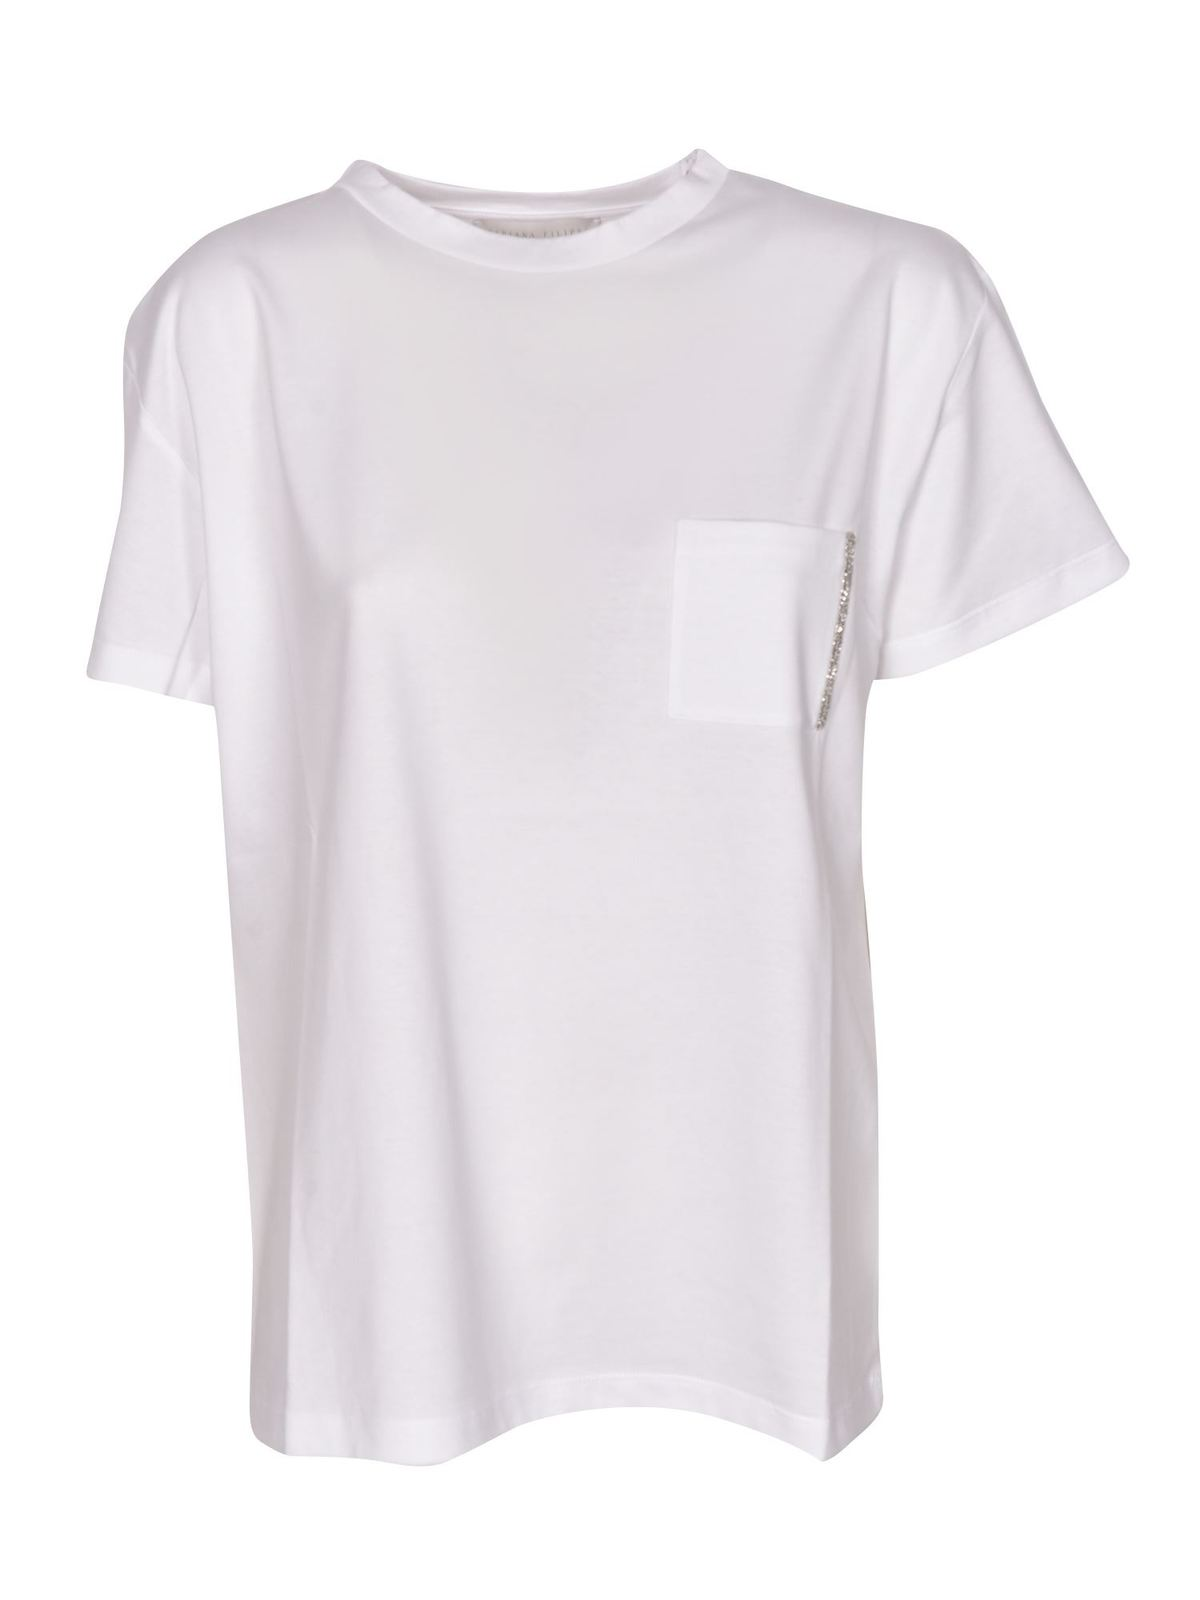 Fabiana Filippi EMBELLISHED-POCKET T-SHIRT IN WHITE